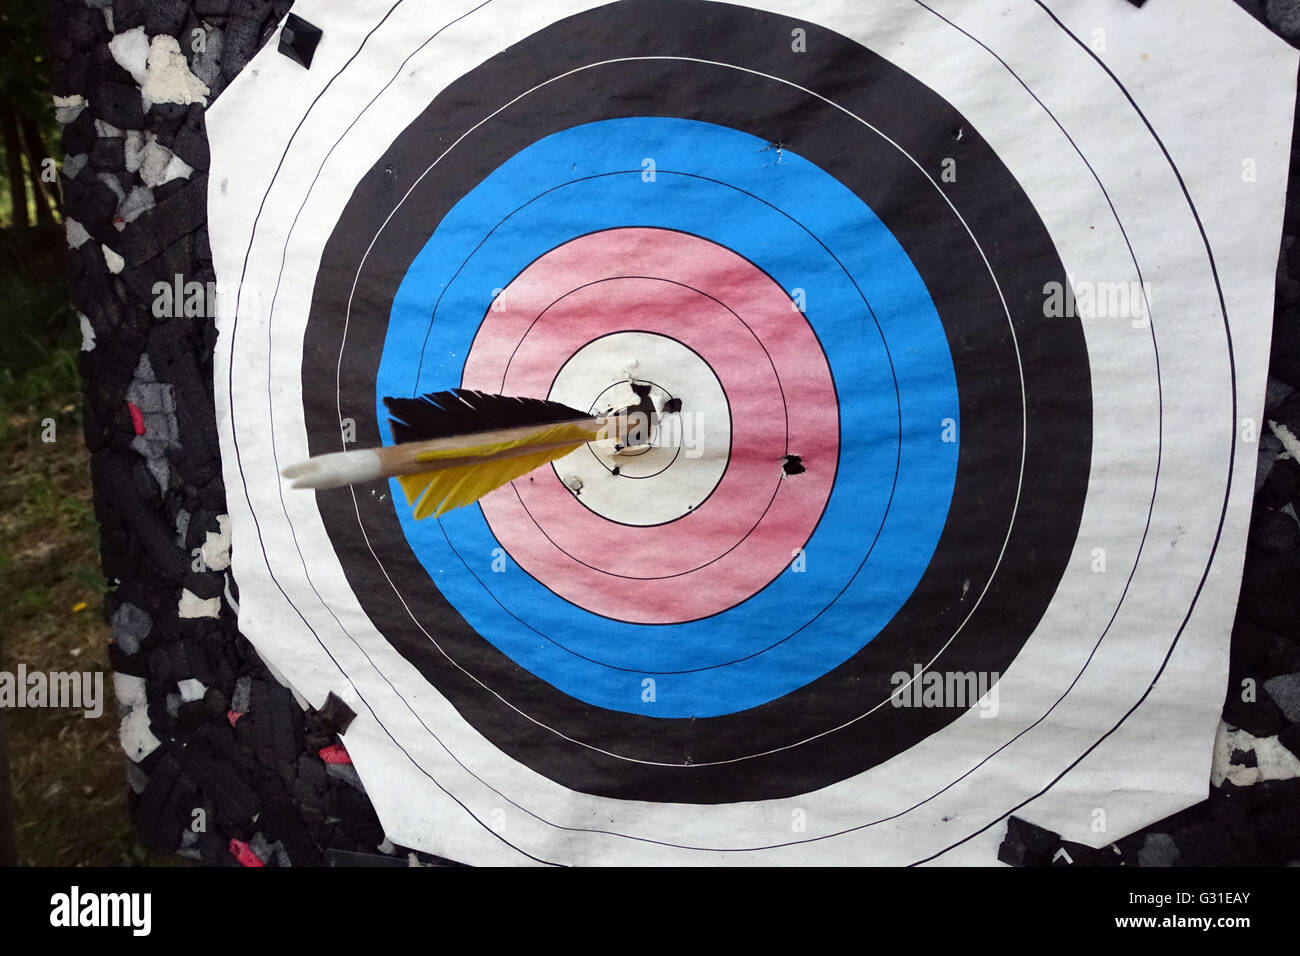 Berlin, Germany, Arrow is in the midst of a target - Stock Image